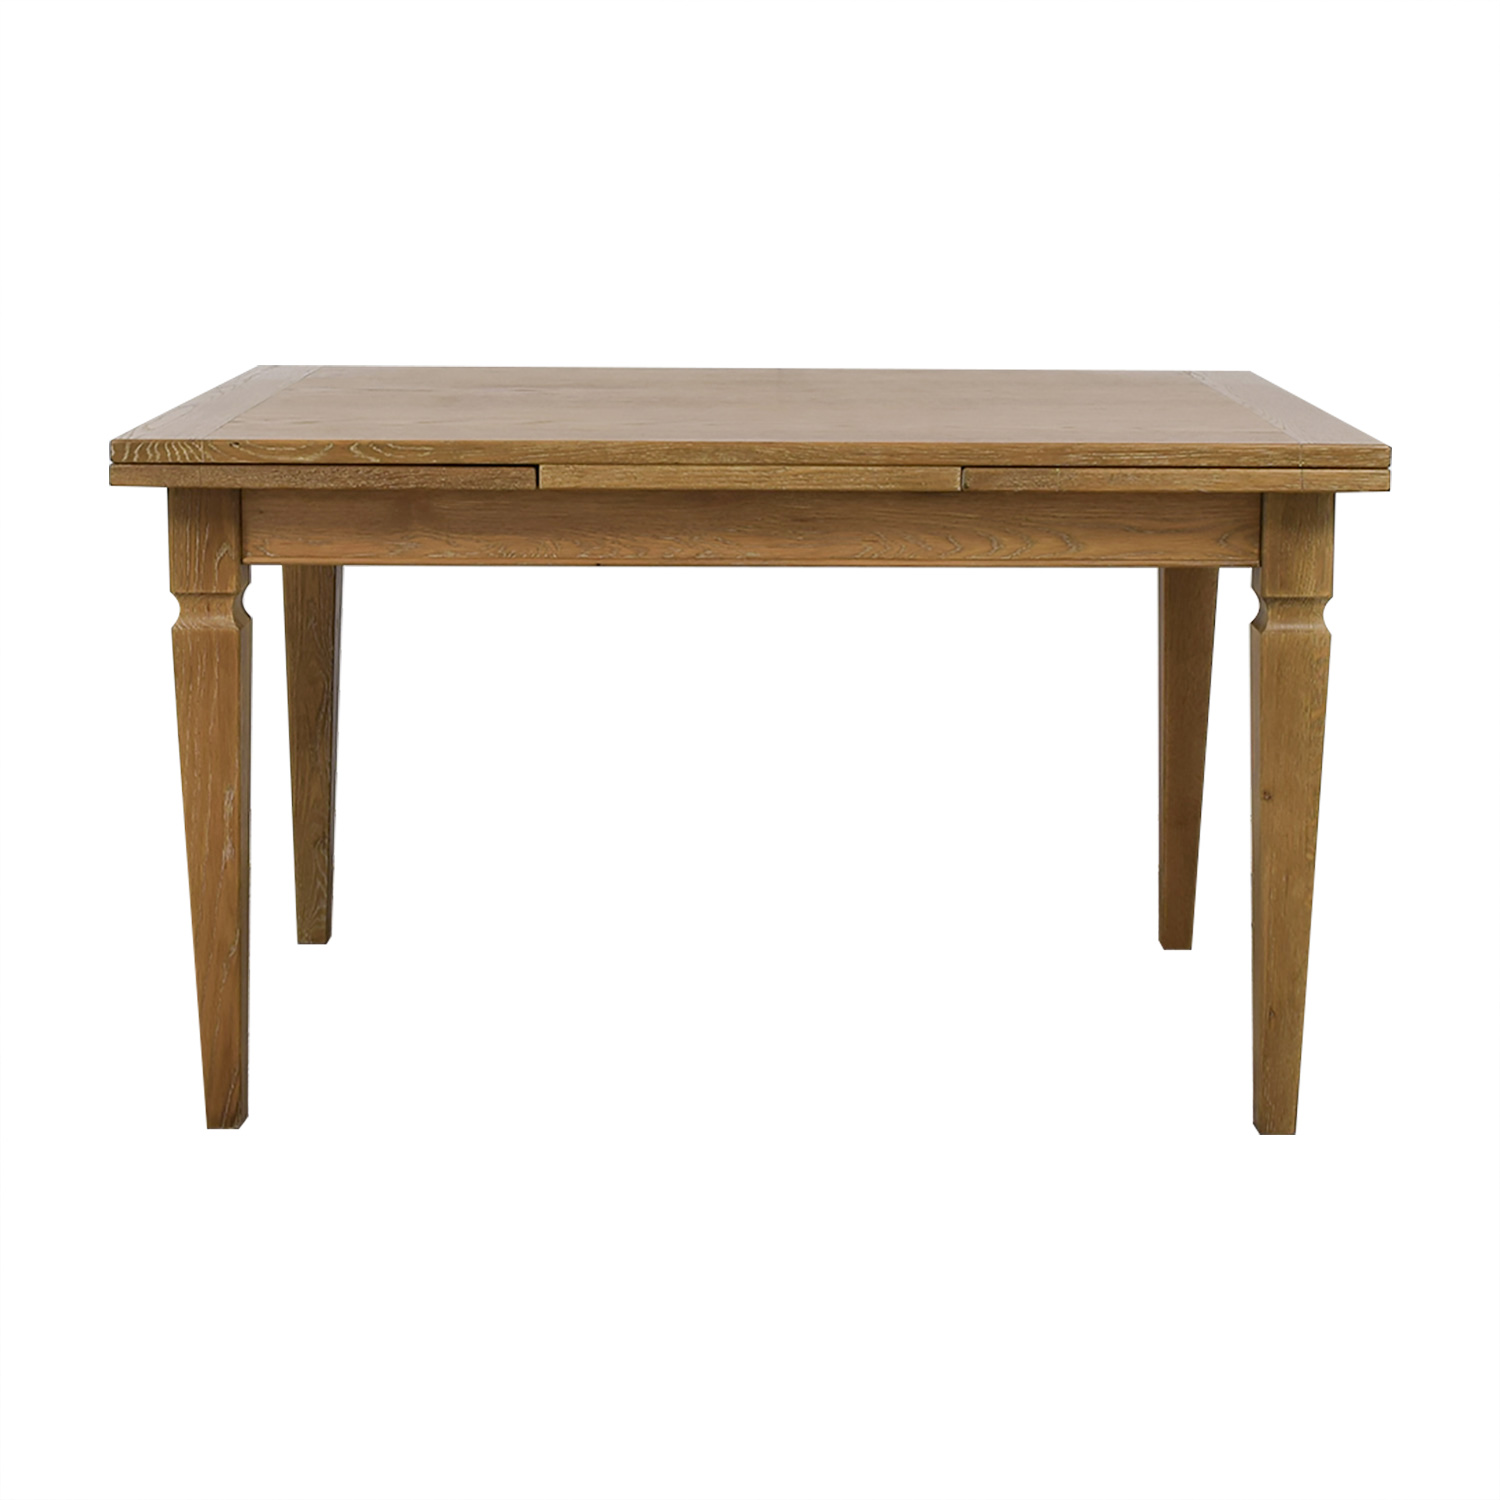 Arhaus Arhaus Luciano Dining Table price